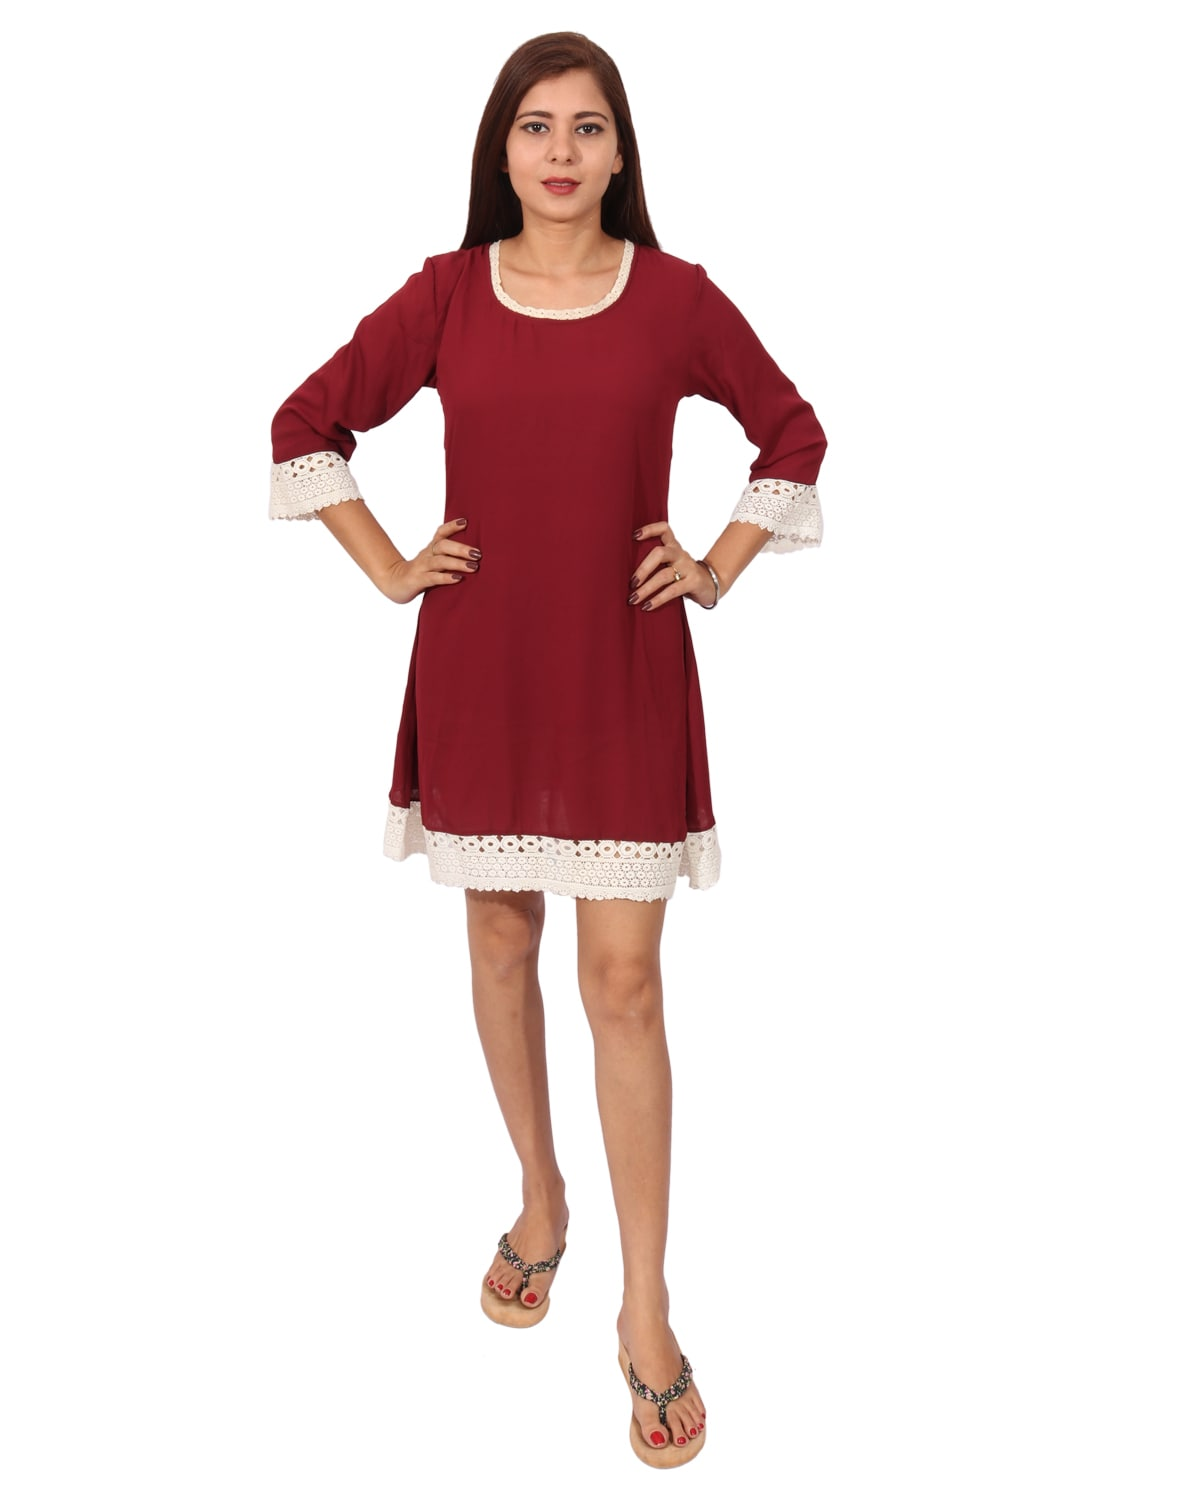 6dfeb3cc4204 Buy Maroon Solid A-line Dress by Rivi - Online shopping for Dresses in  India